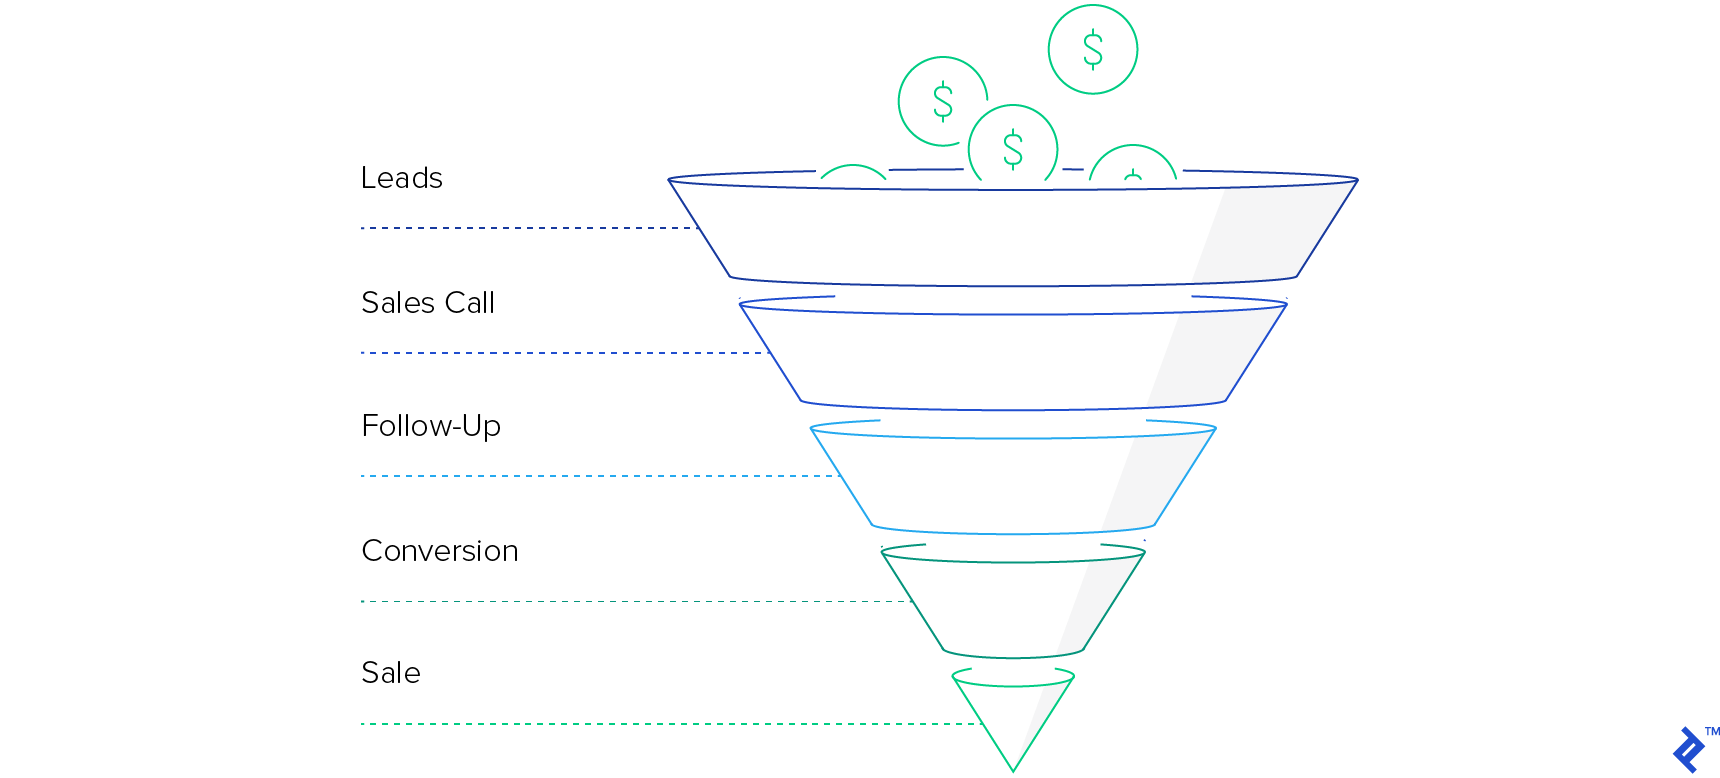 A traditional sales funnel, following leads, sales call, follow-up, conversion, and finally sale, as the funnel narrows.